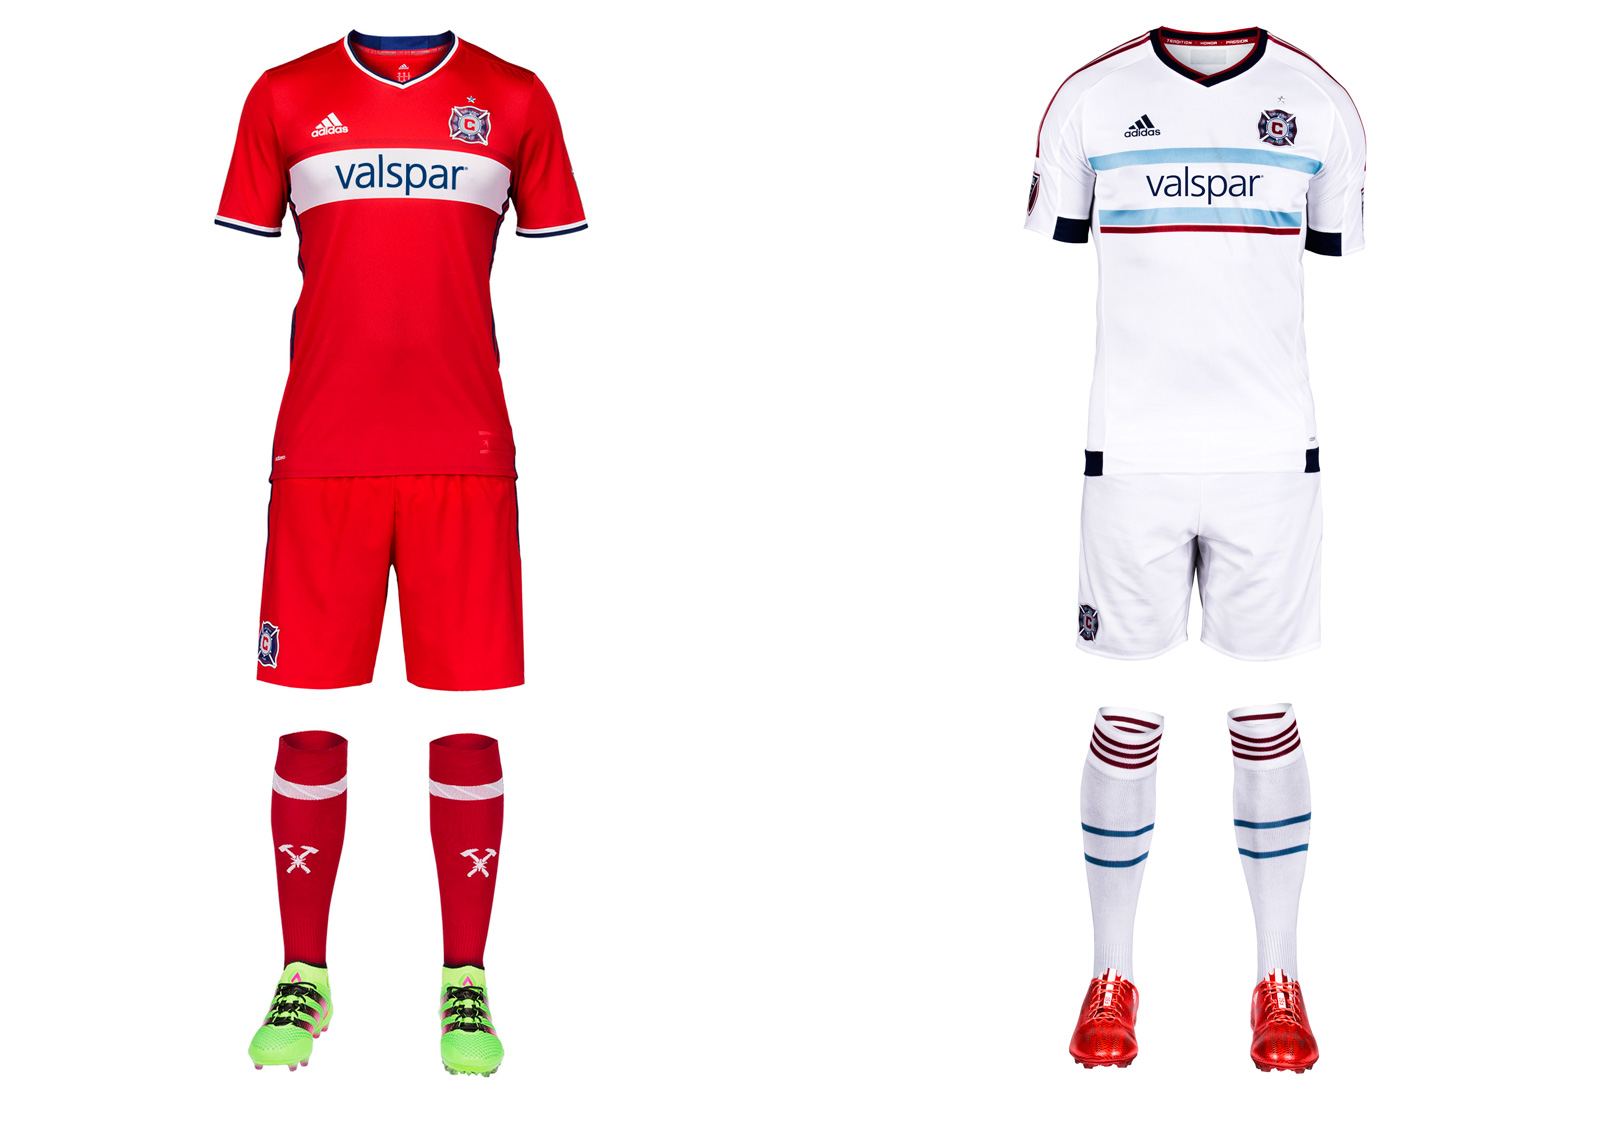 The optimism surrounding a new GM and head coach is accompanied by a welcome return to the red kit and single white hoop the Fire wore when winning trophies. Chicago was the first MLS team in mono-red and has dibs on a look that unfortunately became way too prevalent. The hoop on the new primary uniform is too thin, but otherwise it's a crisp design that should be well received by fans, some of whom protested the red-and-blue offering worn in 2014-15. The all-white away kit featuring hints of the city flag carries over from last year.